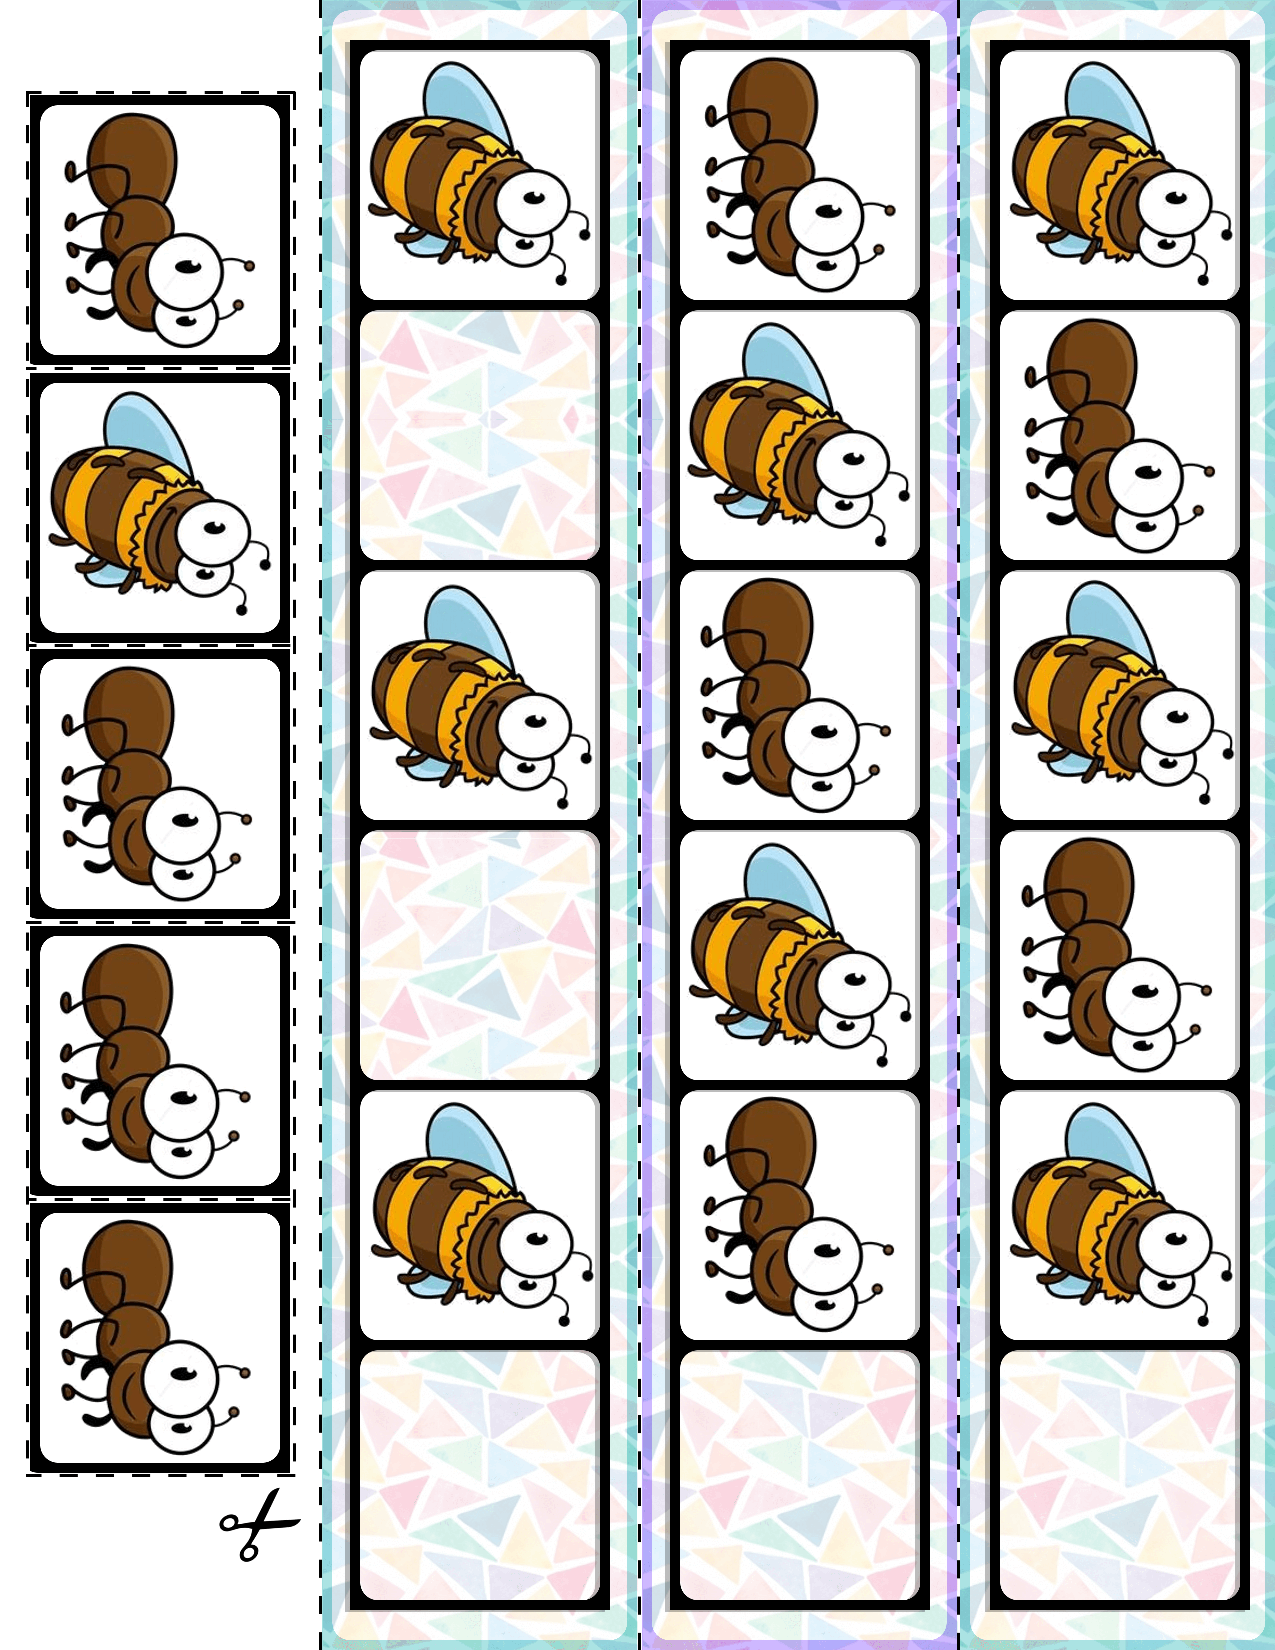 1 Teach Basic Ab Patterns With These Spring Bugs Fill In The Pattern Cards 30 Cards And Super Quick Pre Ab Patterns Card Patterns Teacher Created Resources [ 1650 x 1275 Pixel ]